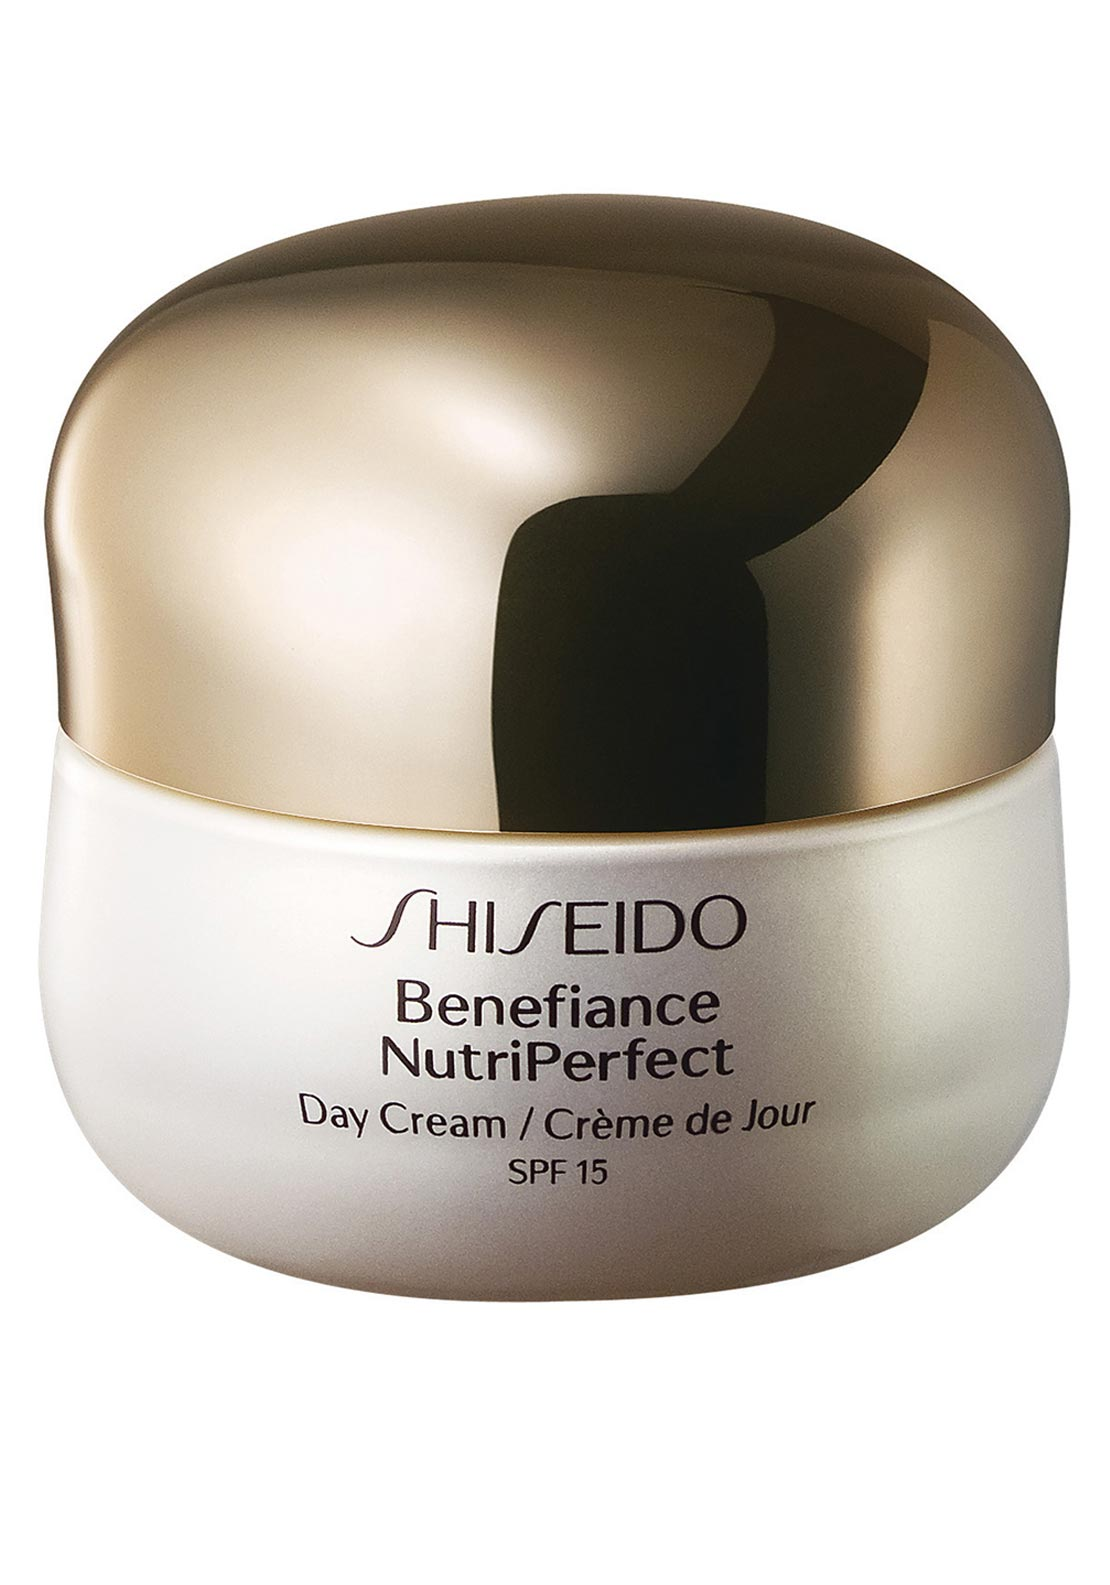 Shiseido Benefiance NutriPerfect Day Cream SPF 15, 50ml